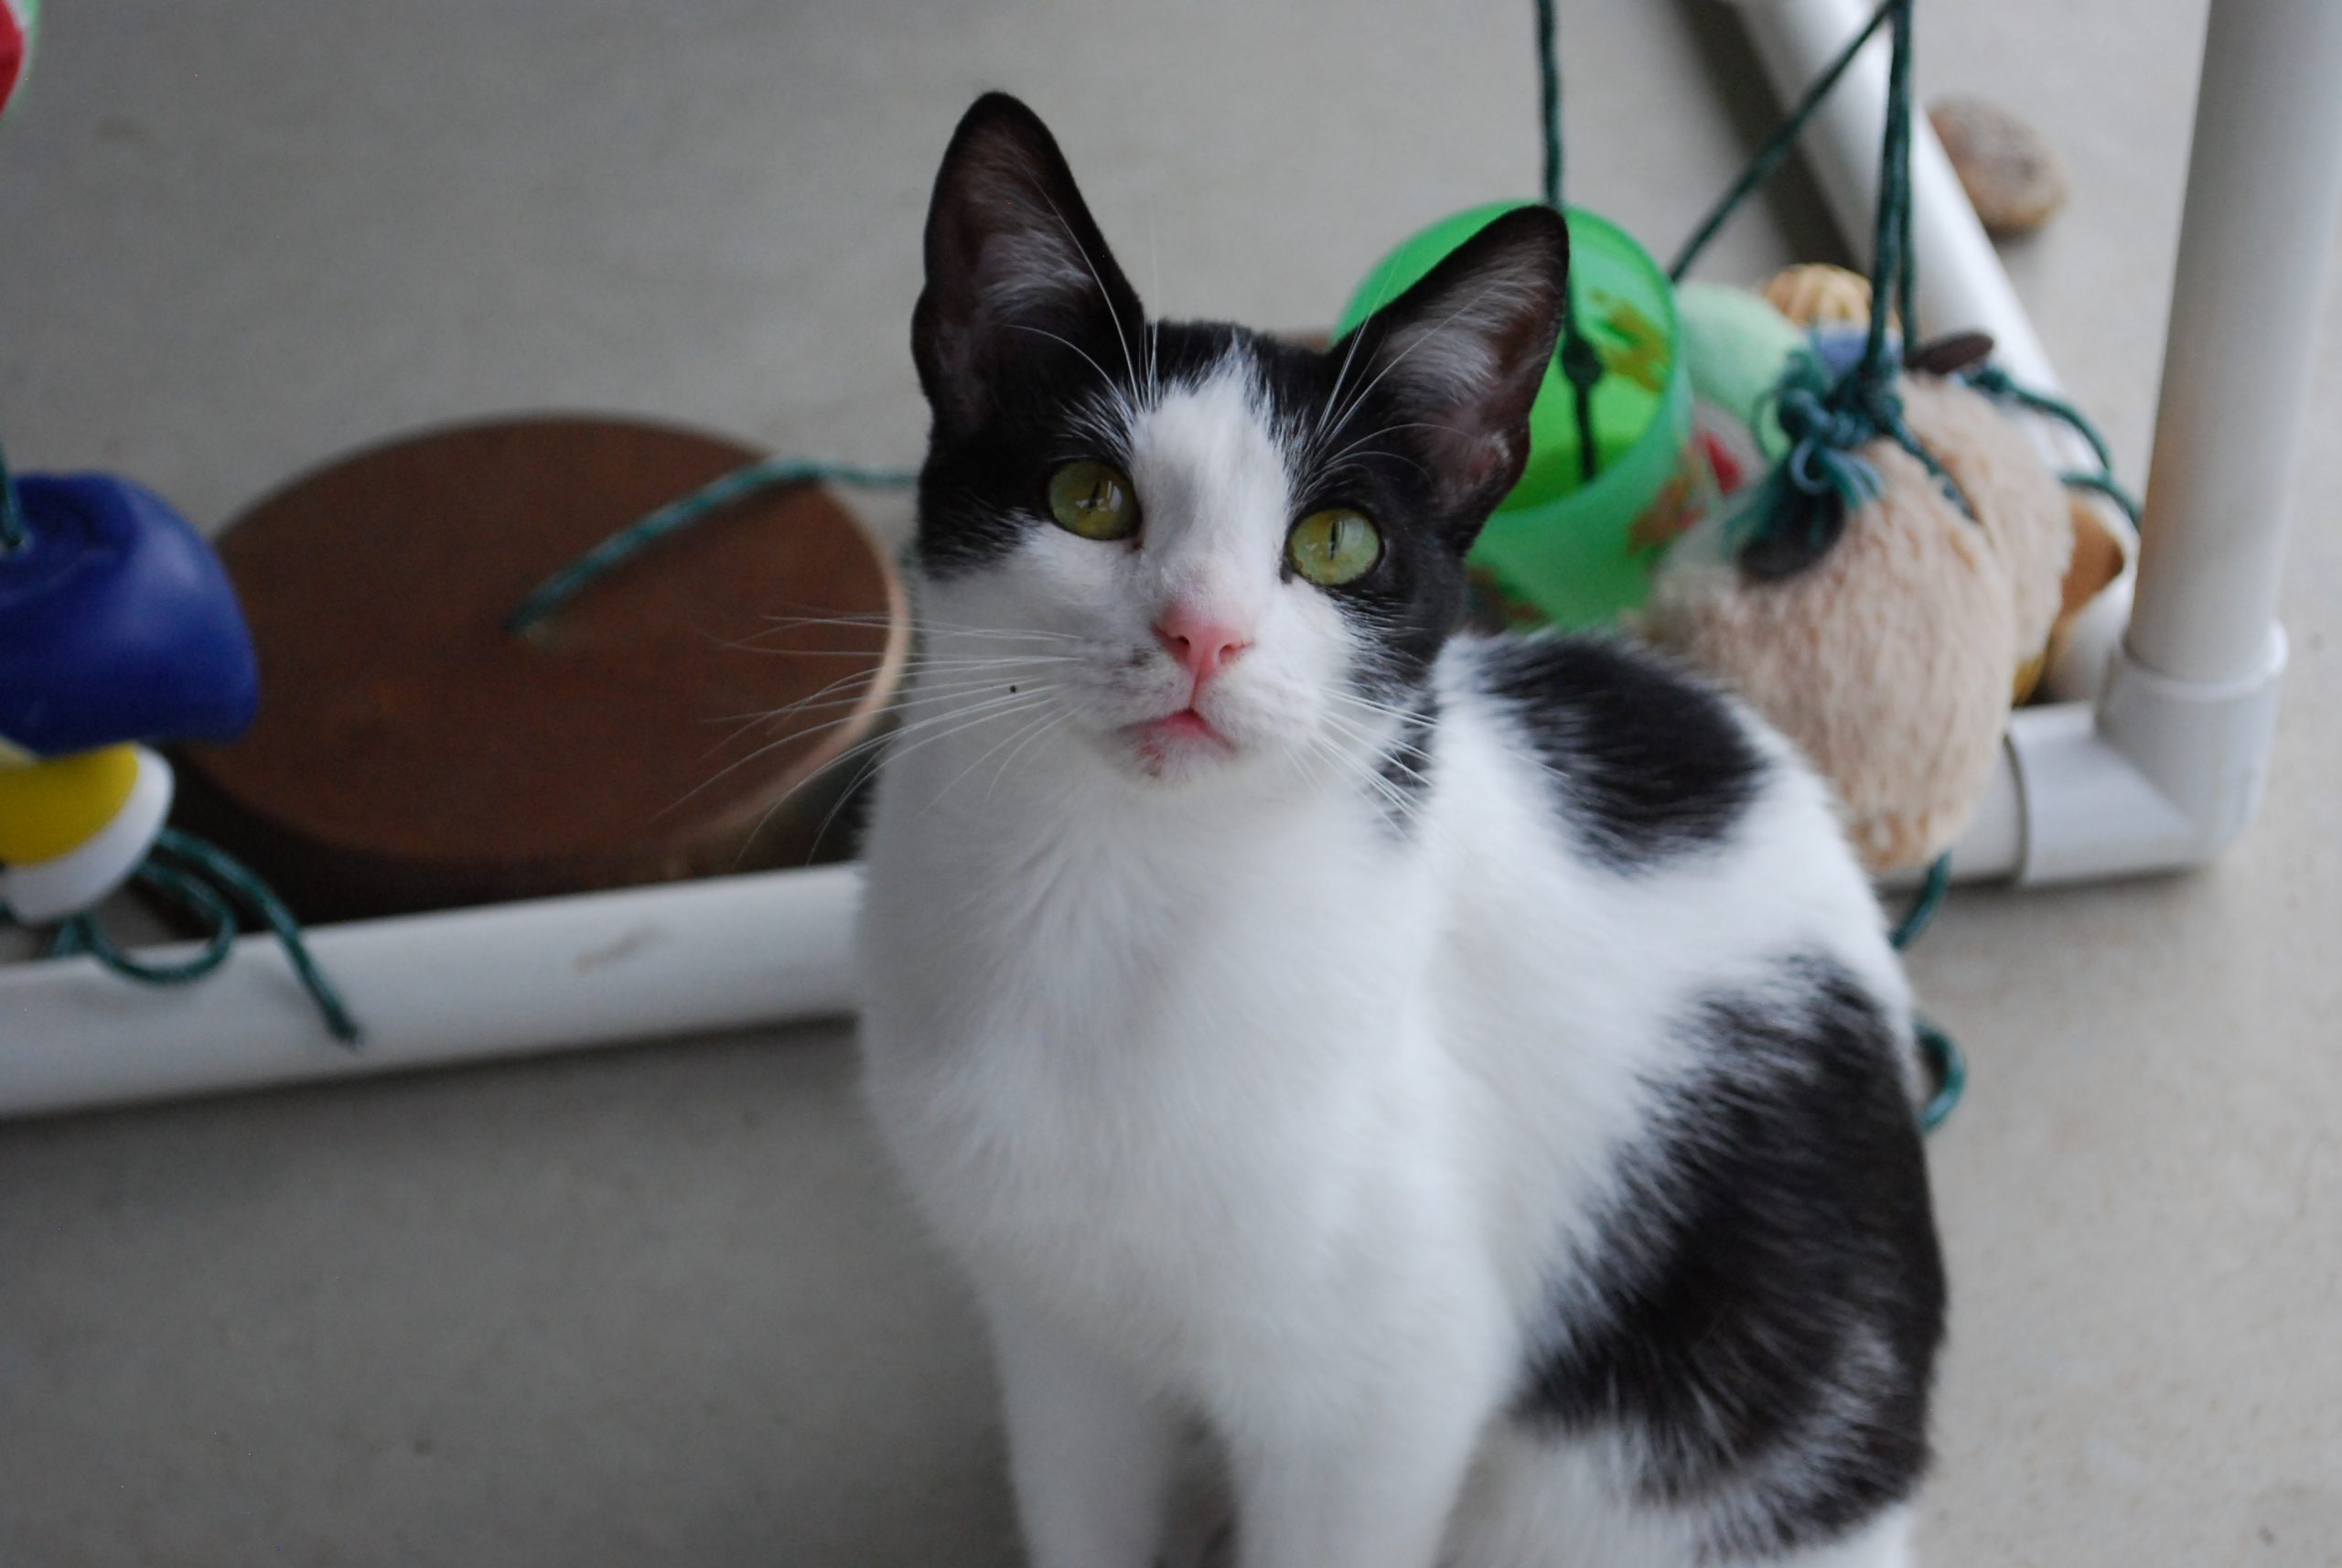 Adopting a cat changes one woman's life